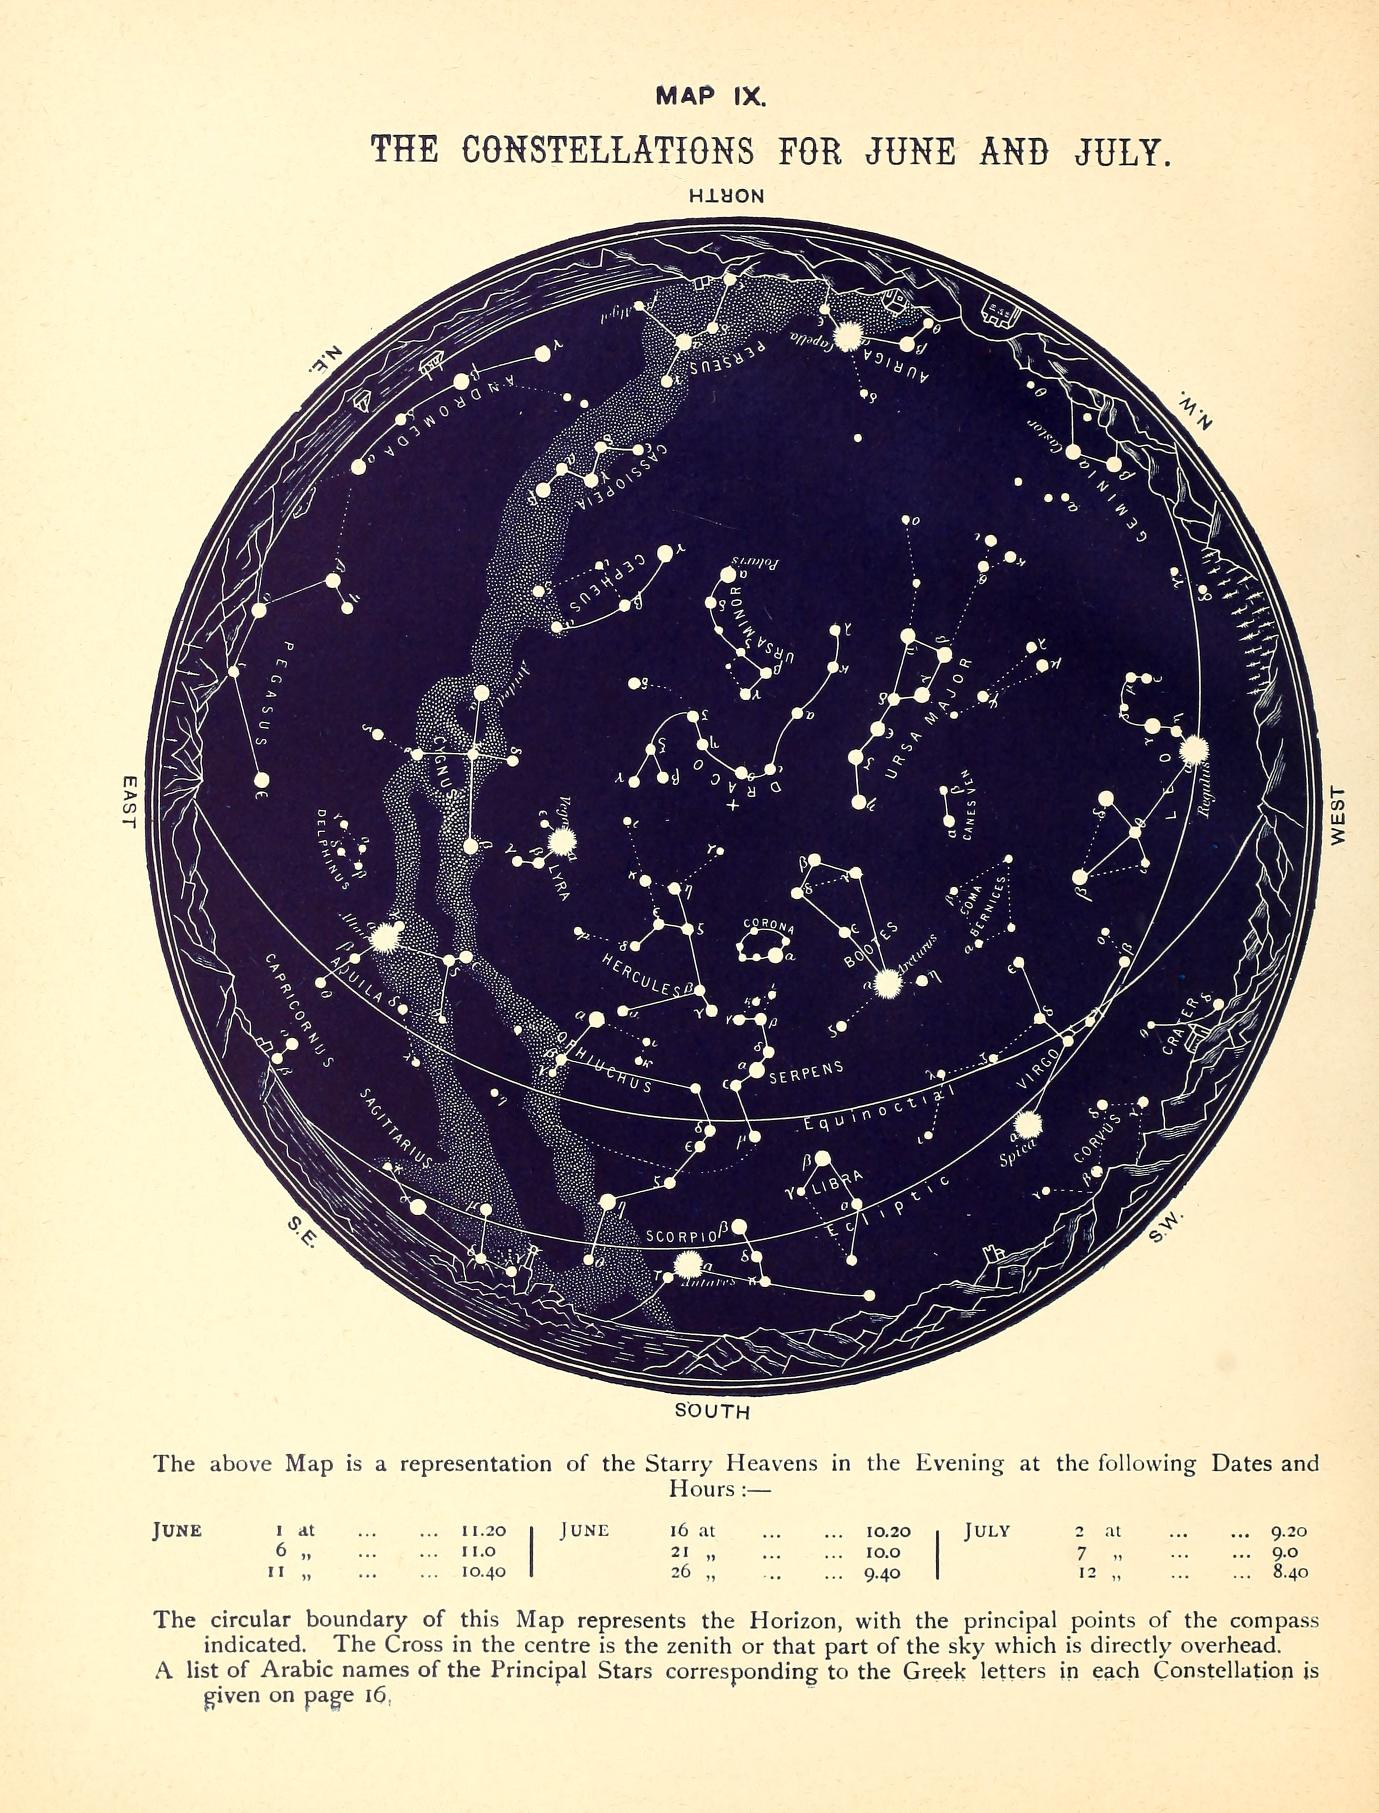 Scientific Illustration of a star map; the constellations of the summer months